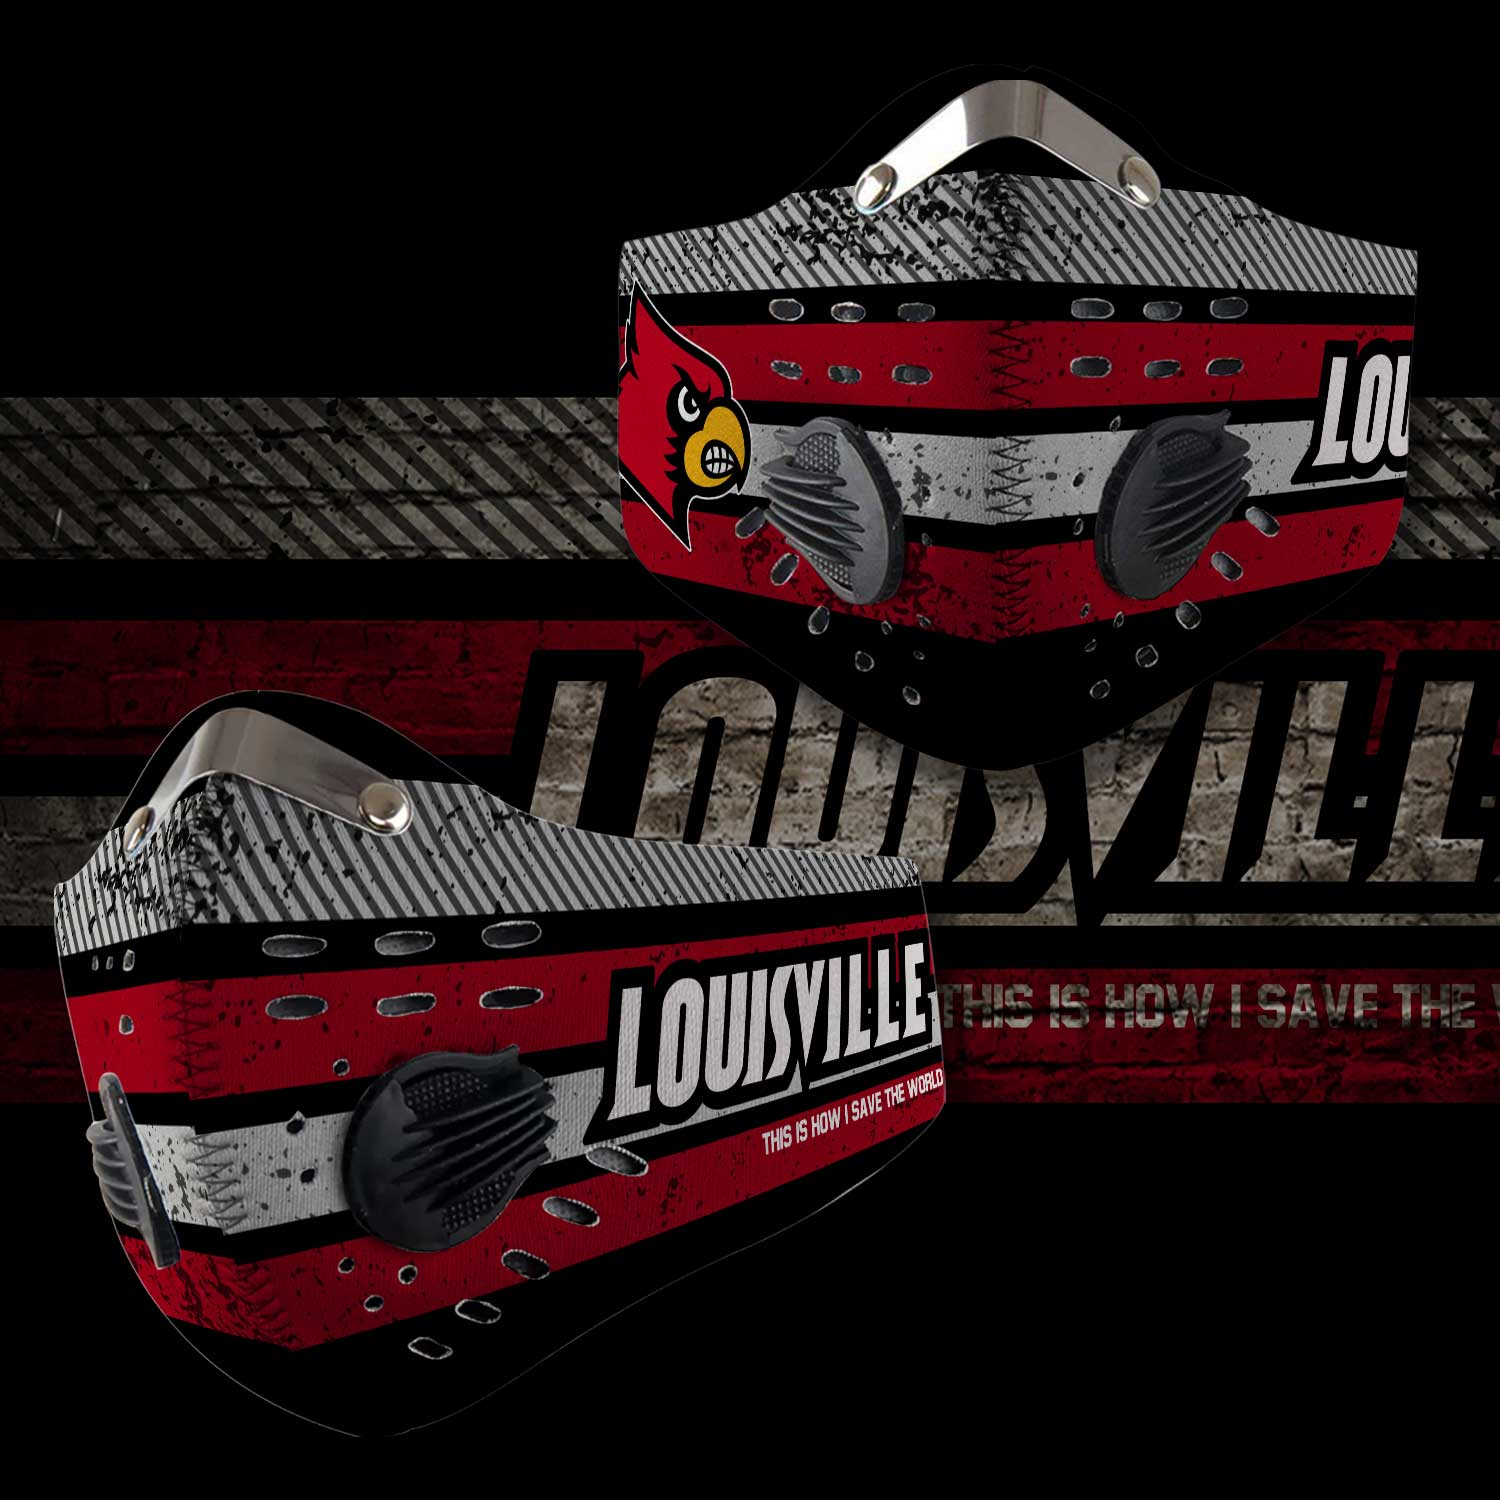 Louisville cardinals this is how i save the world carbon filter face mask 1